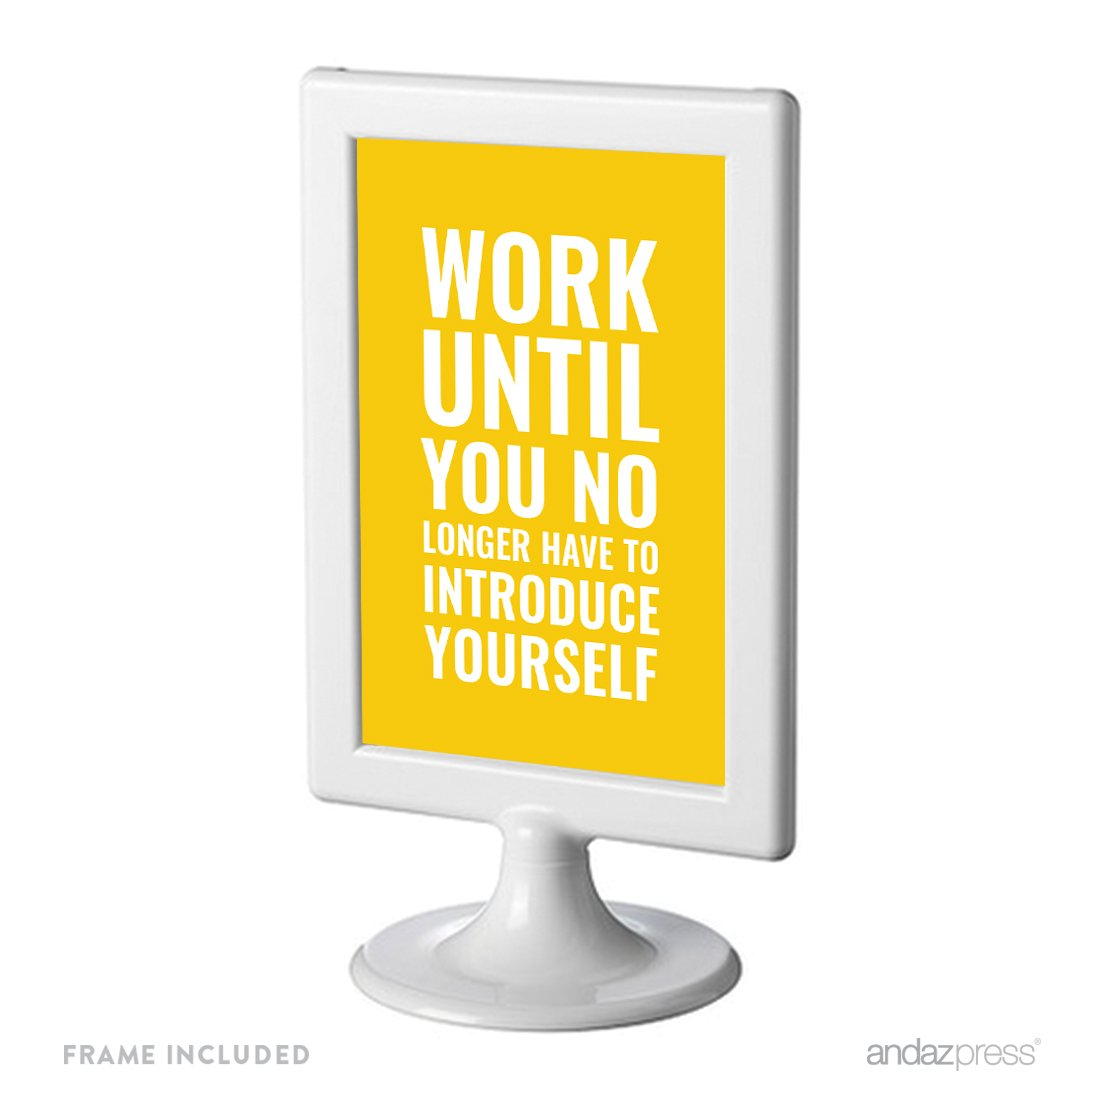 inspirational frames for office. Amazon.com: Andaz Press Office Framed Desk Art, Work Until You No Longer Have To Introduce Yourself, 4x6-inch Inspirational Funny Quotes Gift Print, 1-Pack, Frames For W